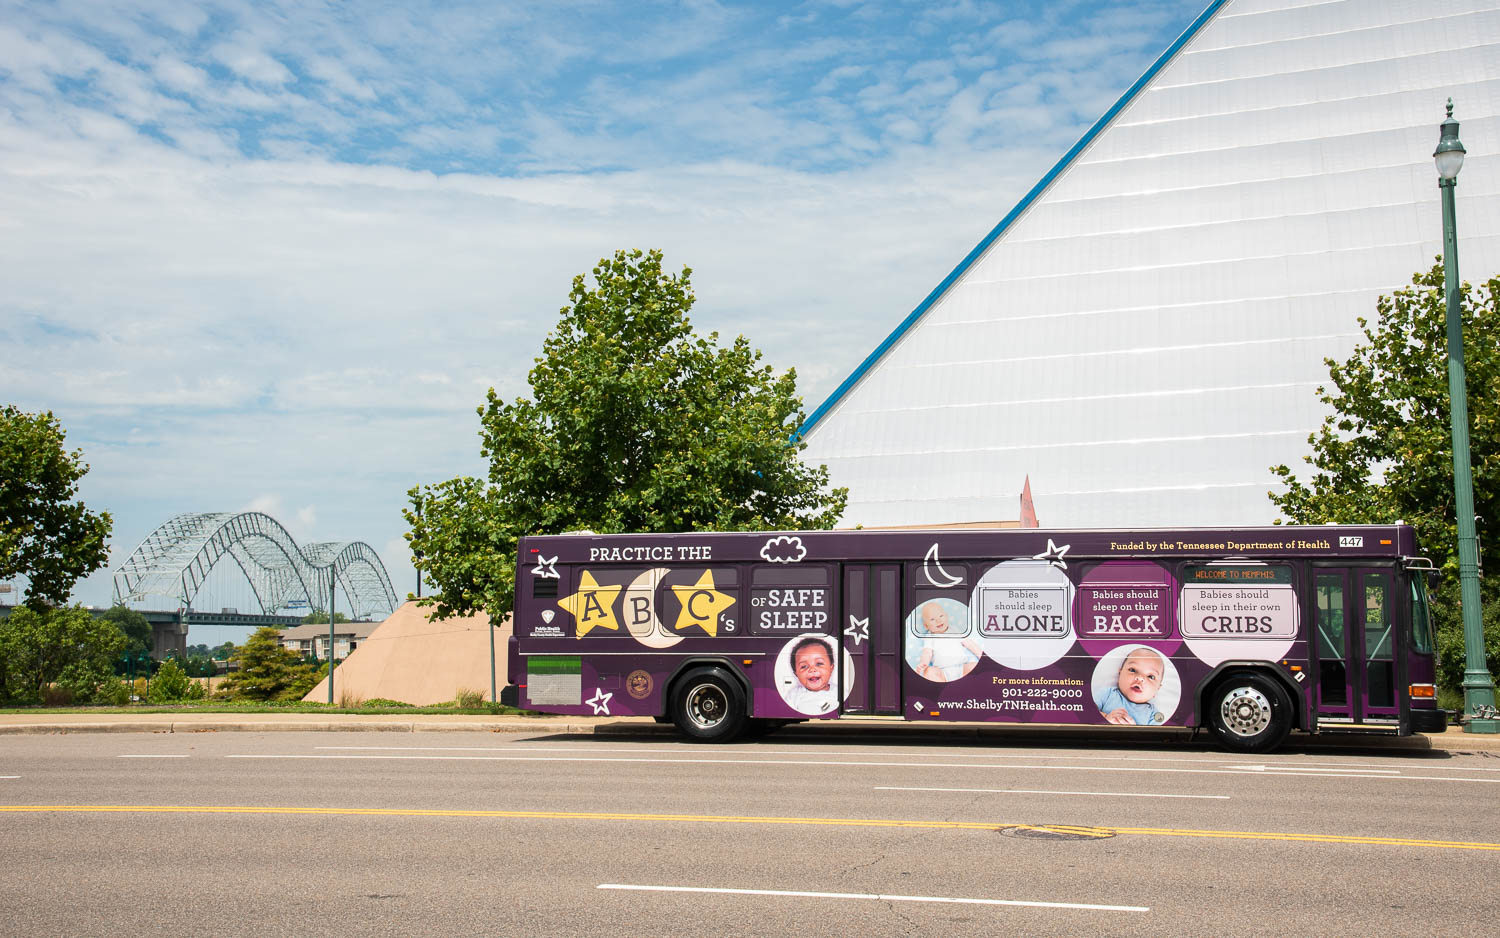 Shelby County Health Department: ABC's of Safe Sleep Bus Wrap